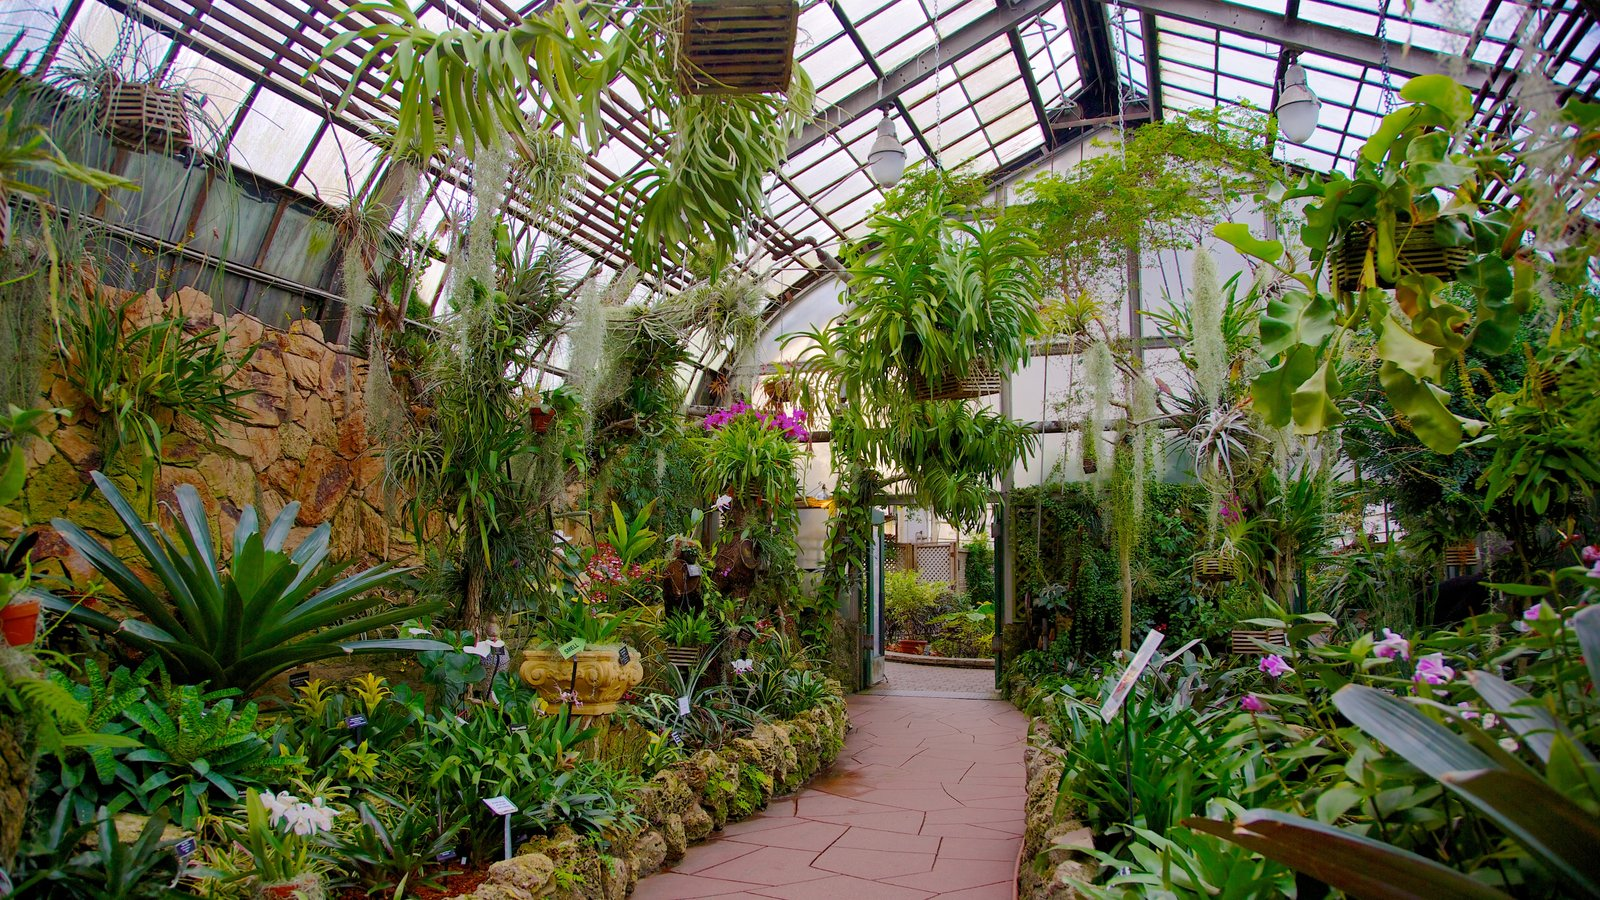 Lincoln Park Conservatory showing a garden, interior views and flowers